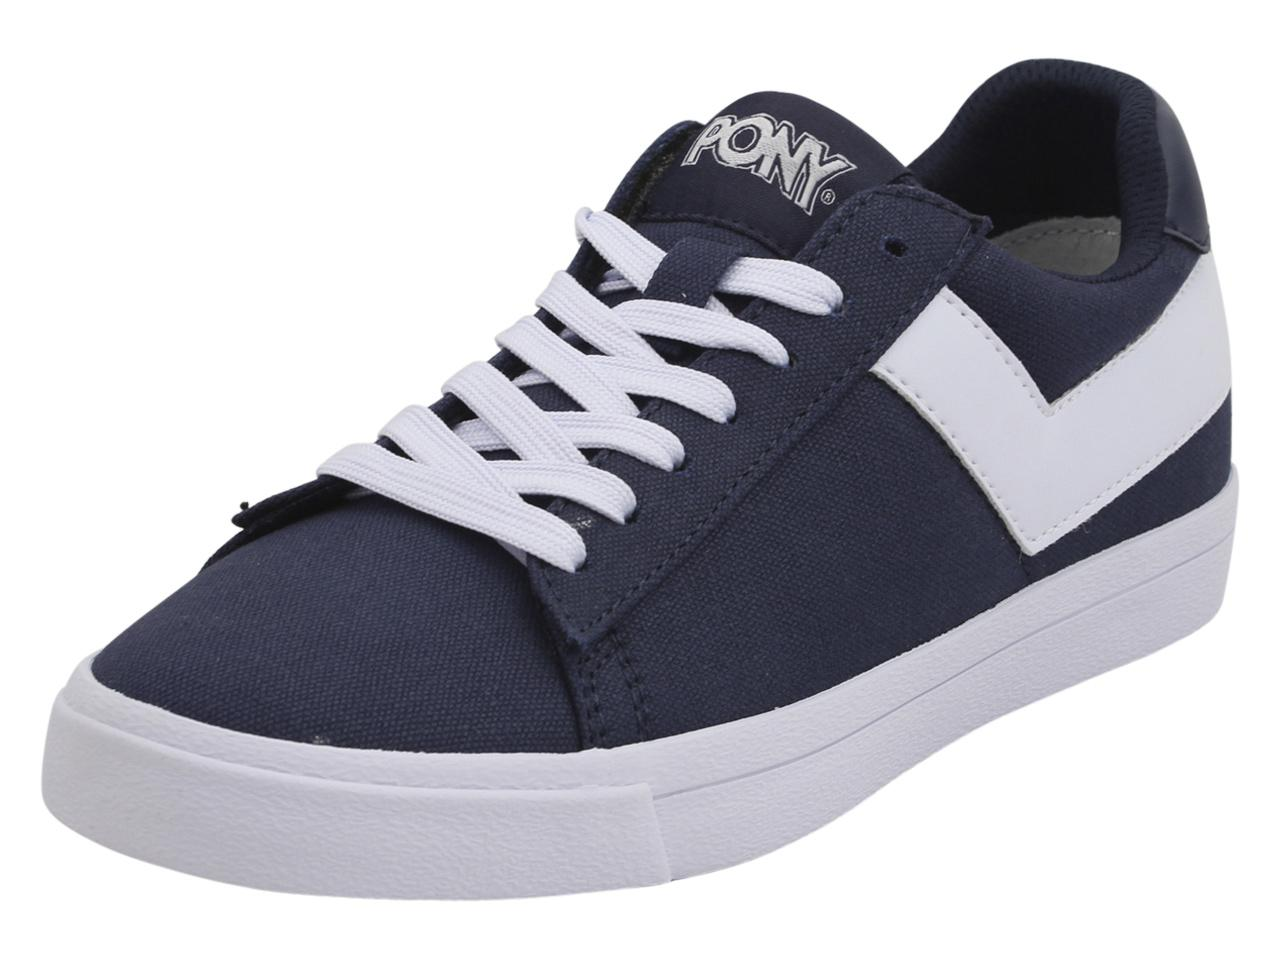 Image of Pony Women's Top Star Lo Core Canvas Sneakers Shoes - Blue - 8.5 B(M) US